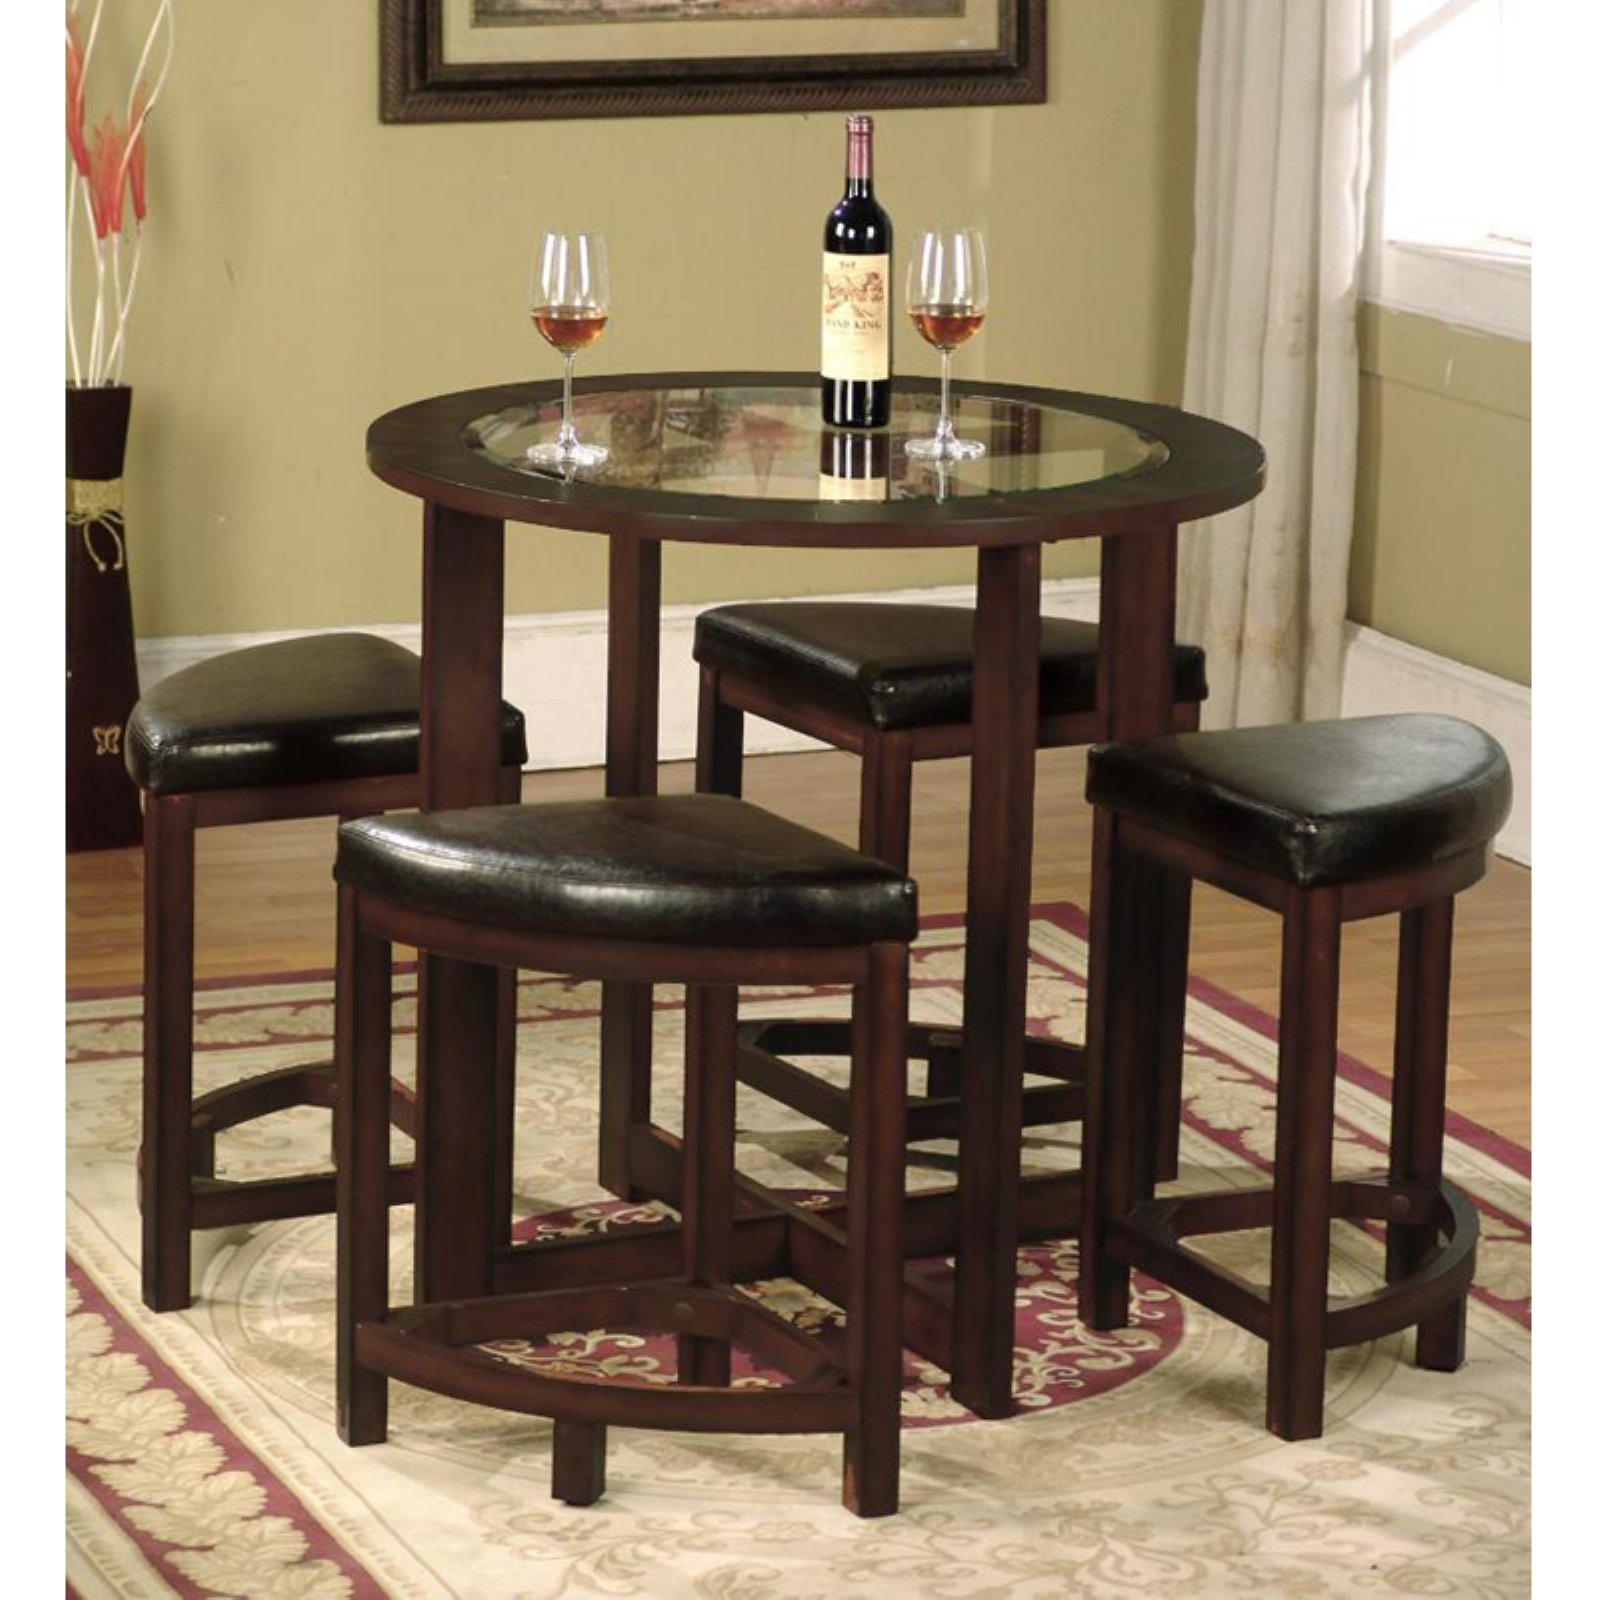 Fabulous Roundhill Furniture Cylina Solid Wood Glass Top Round Dining Table With 4 Chairs Creativecarmelina Interior Chair Design Creativecarmelinacom